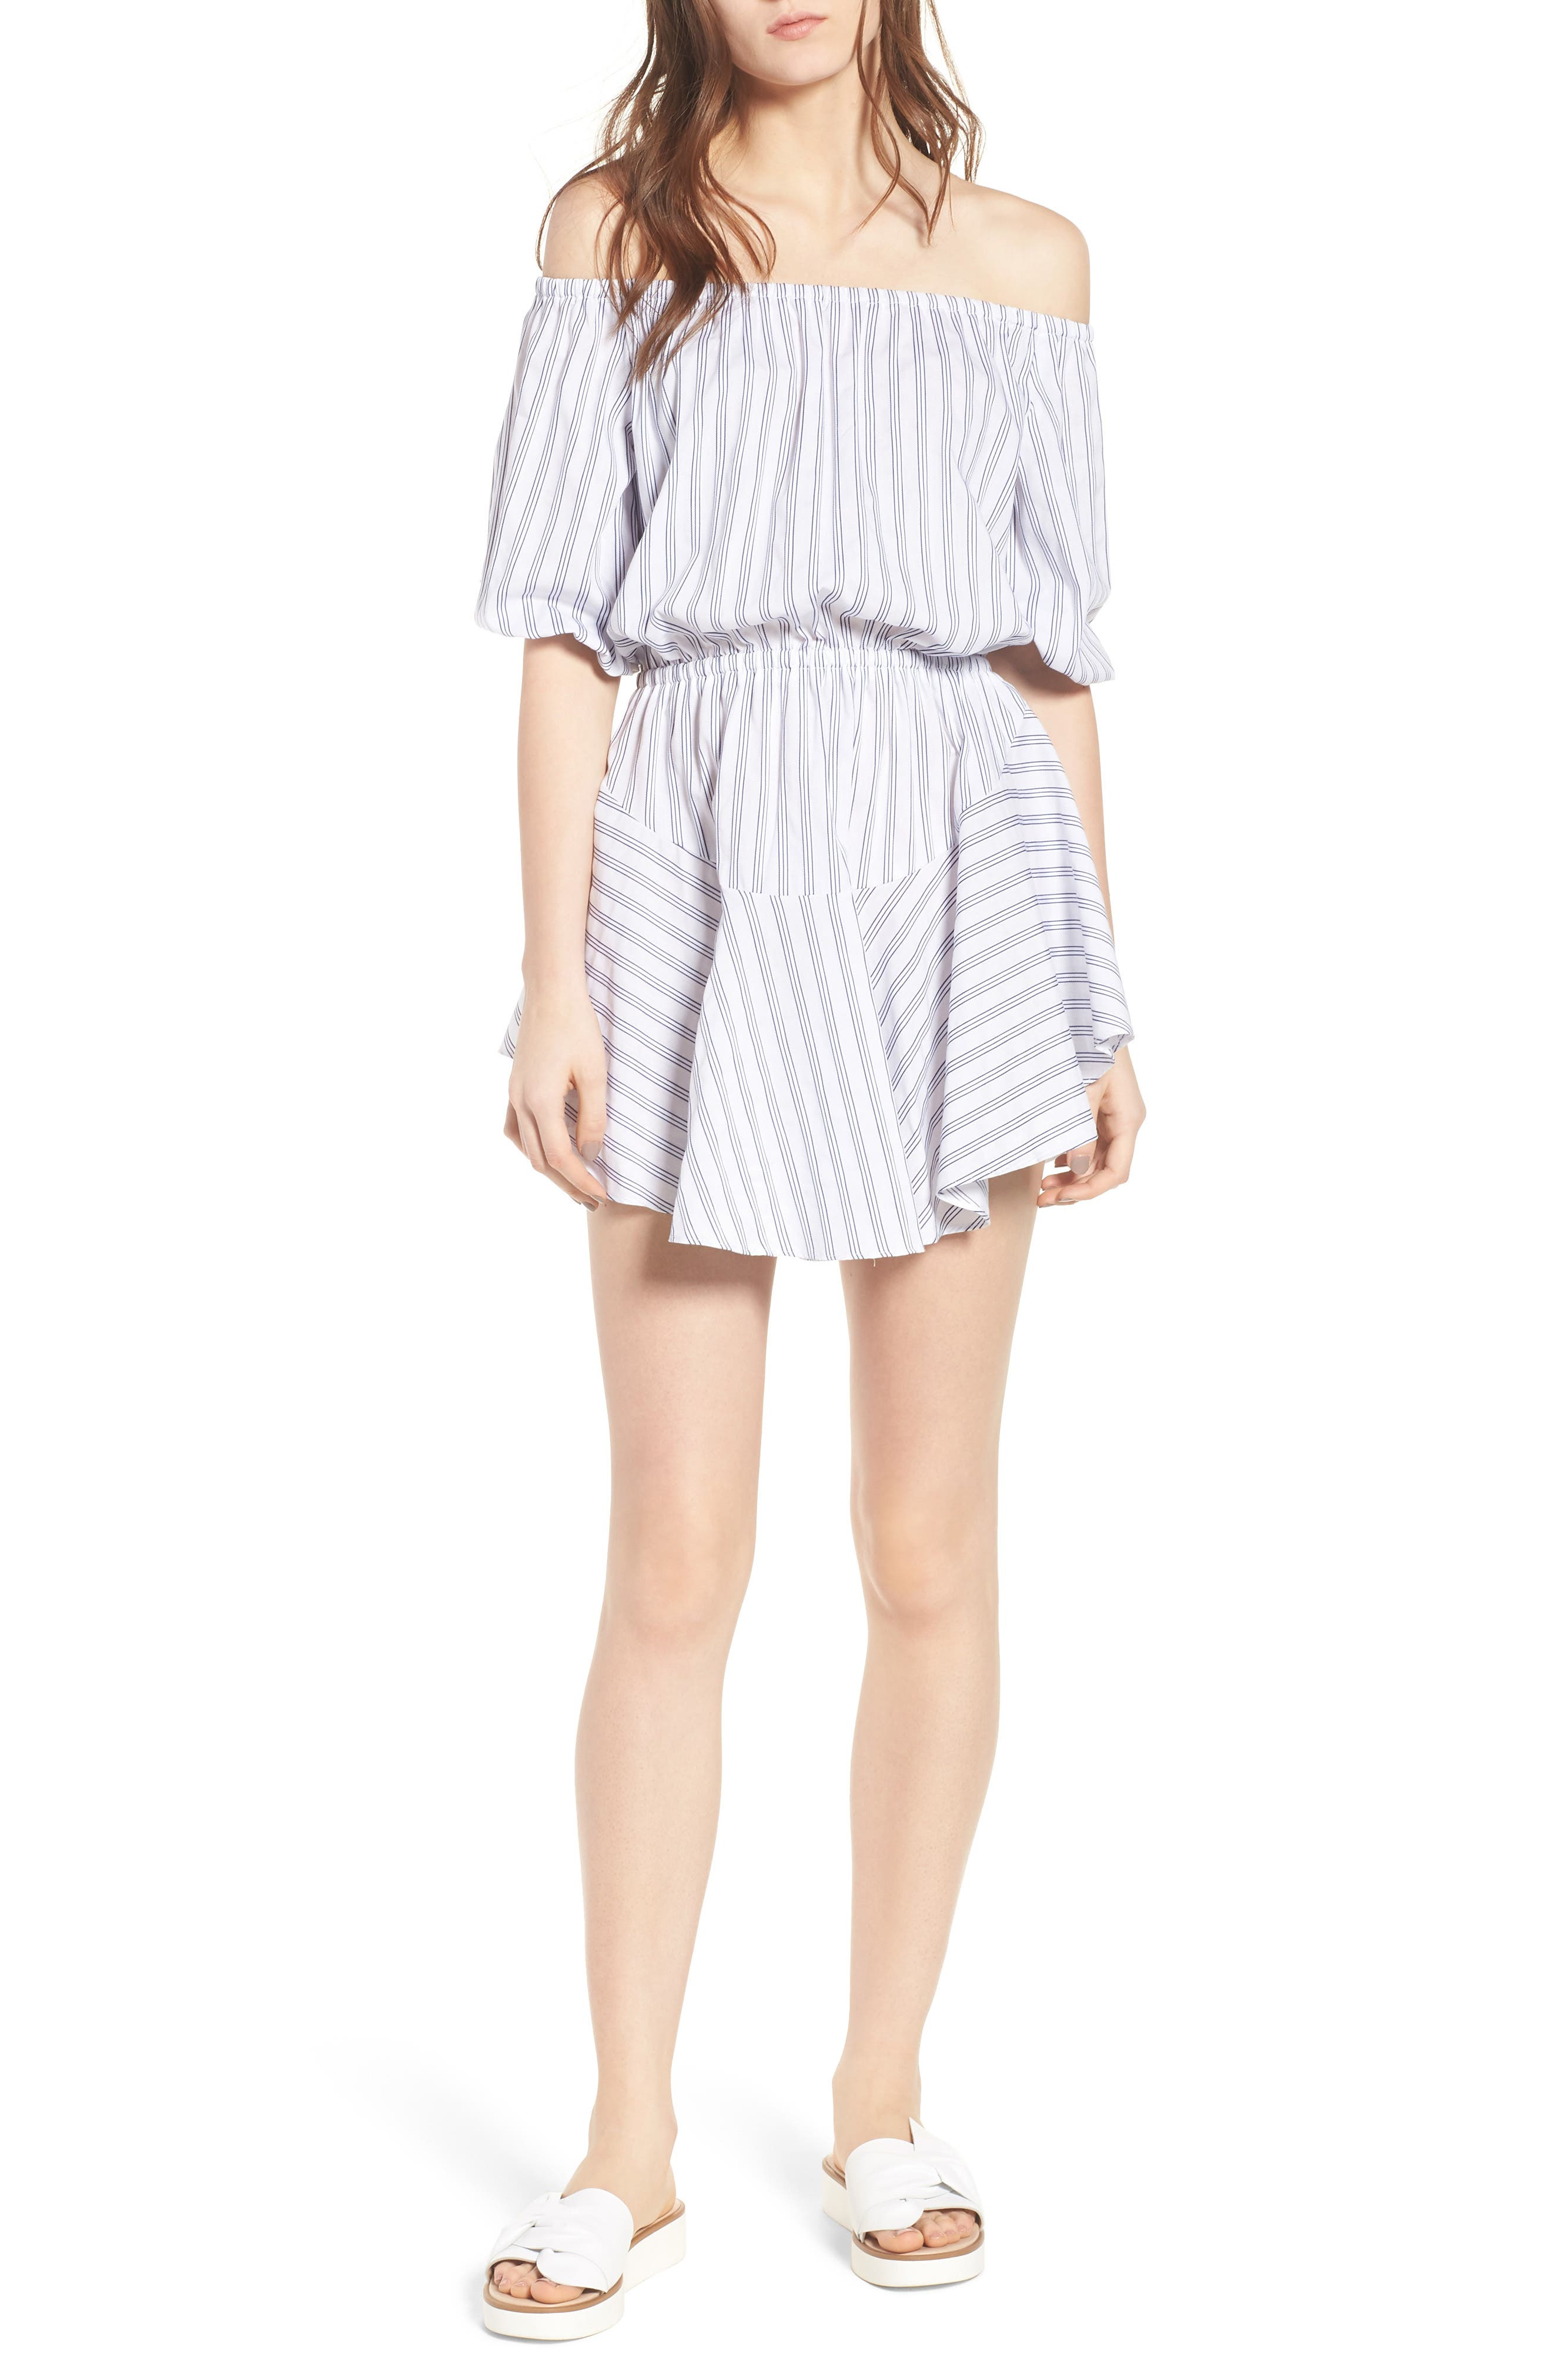 Barbados Stripe Off The Shoulder Dress by The Fifth Label